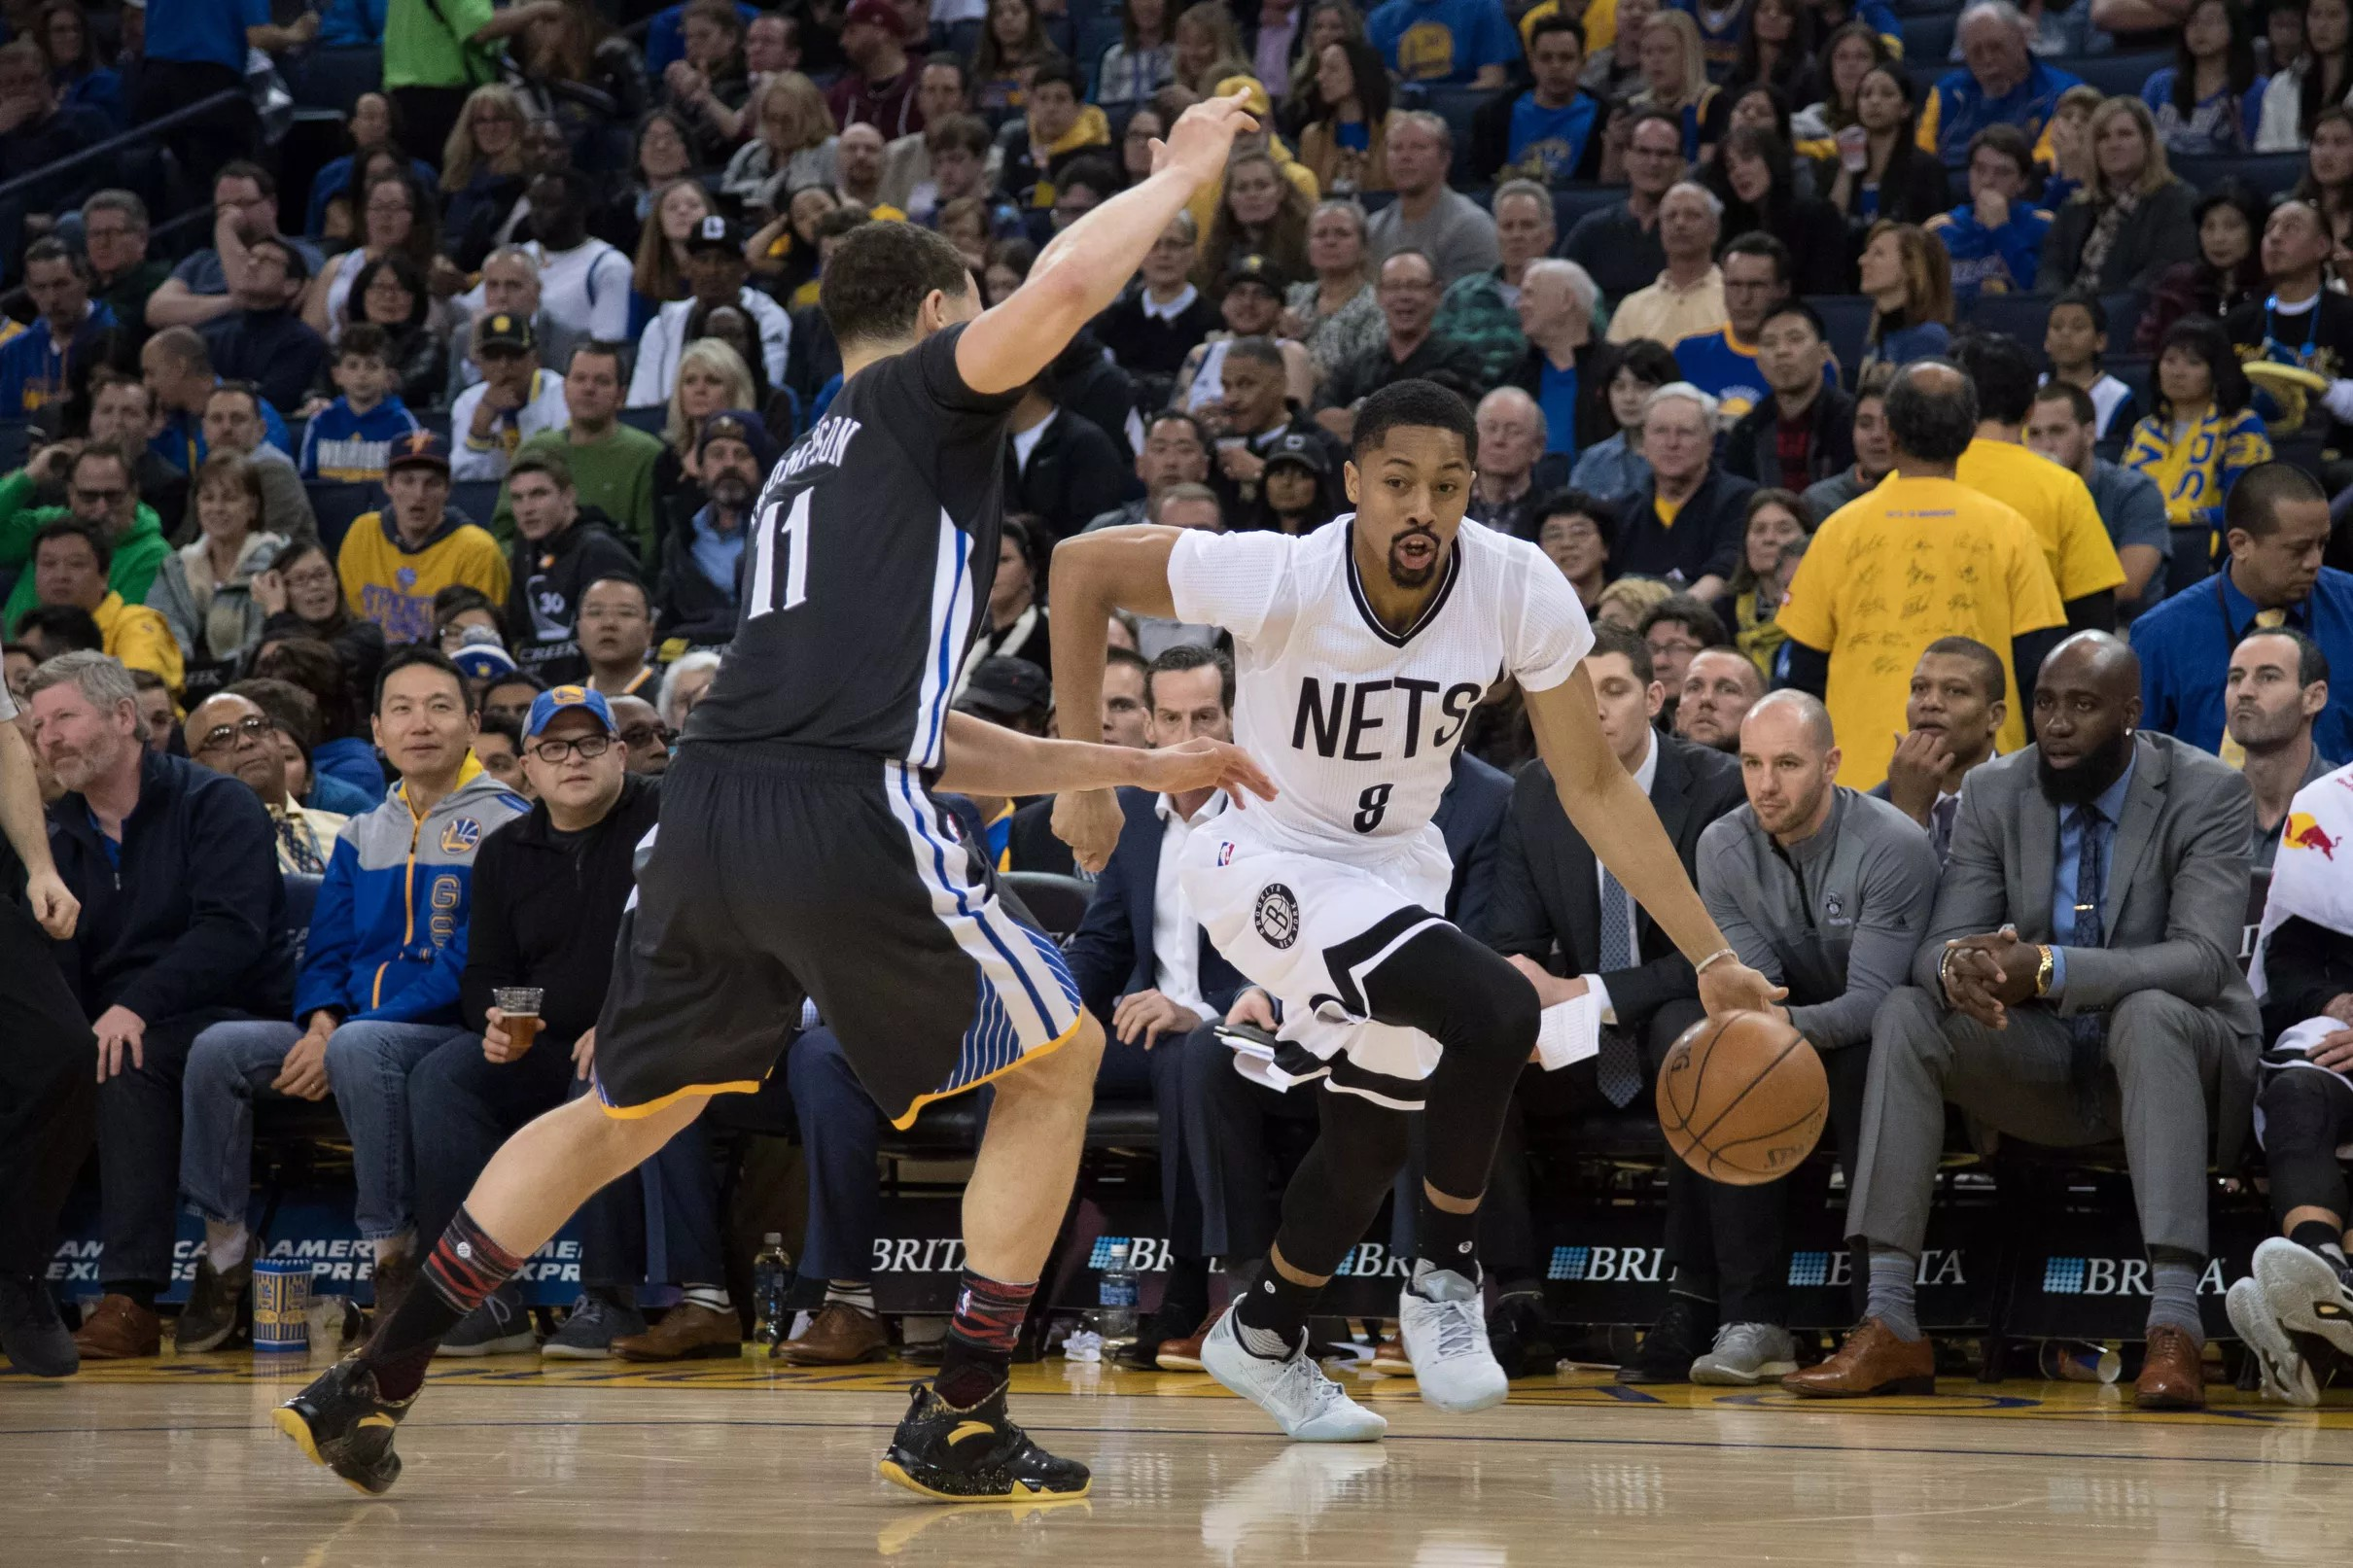 Warriors vs Nets Key Stat: The Nets offense is evolving